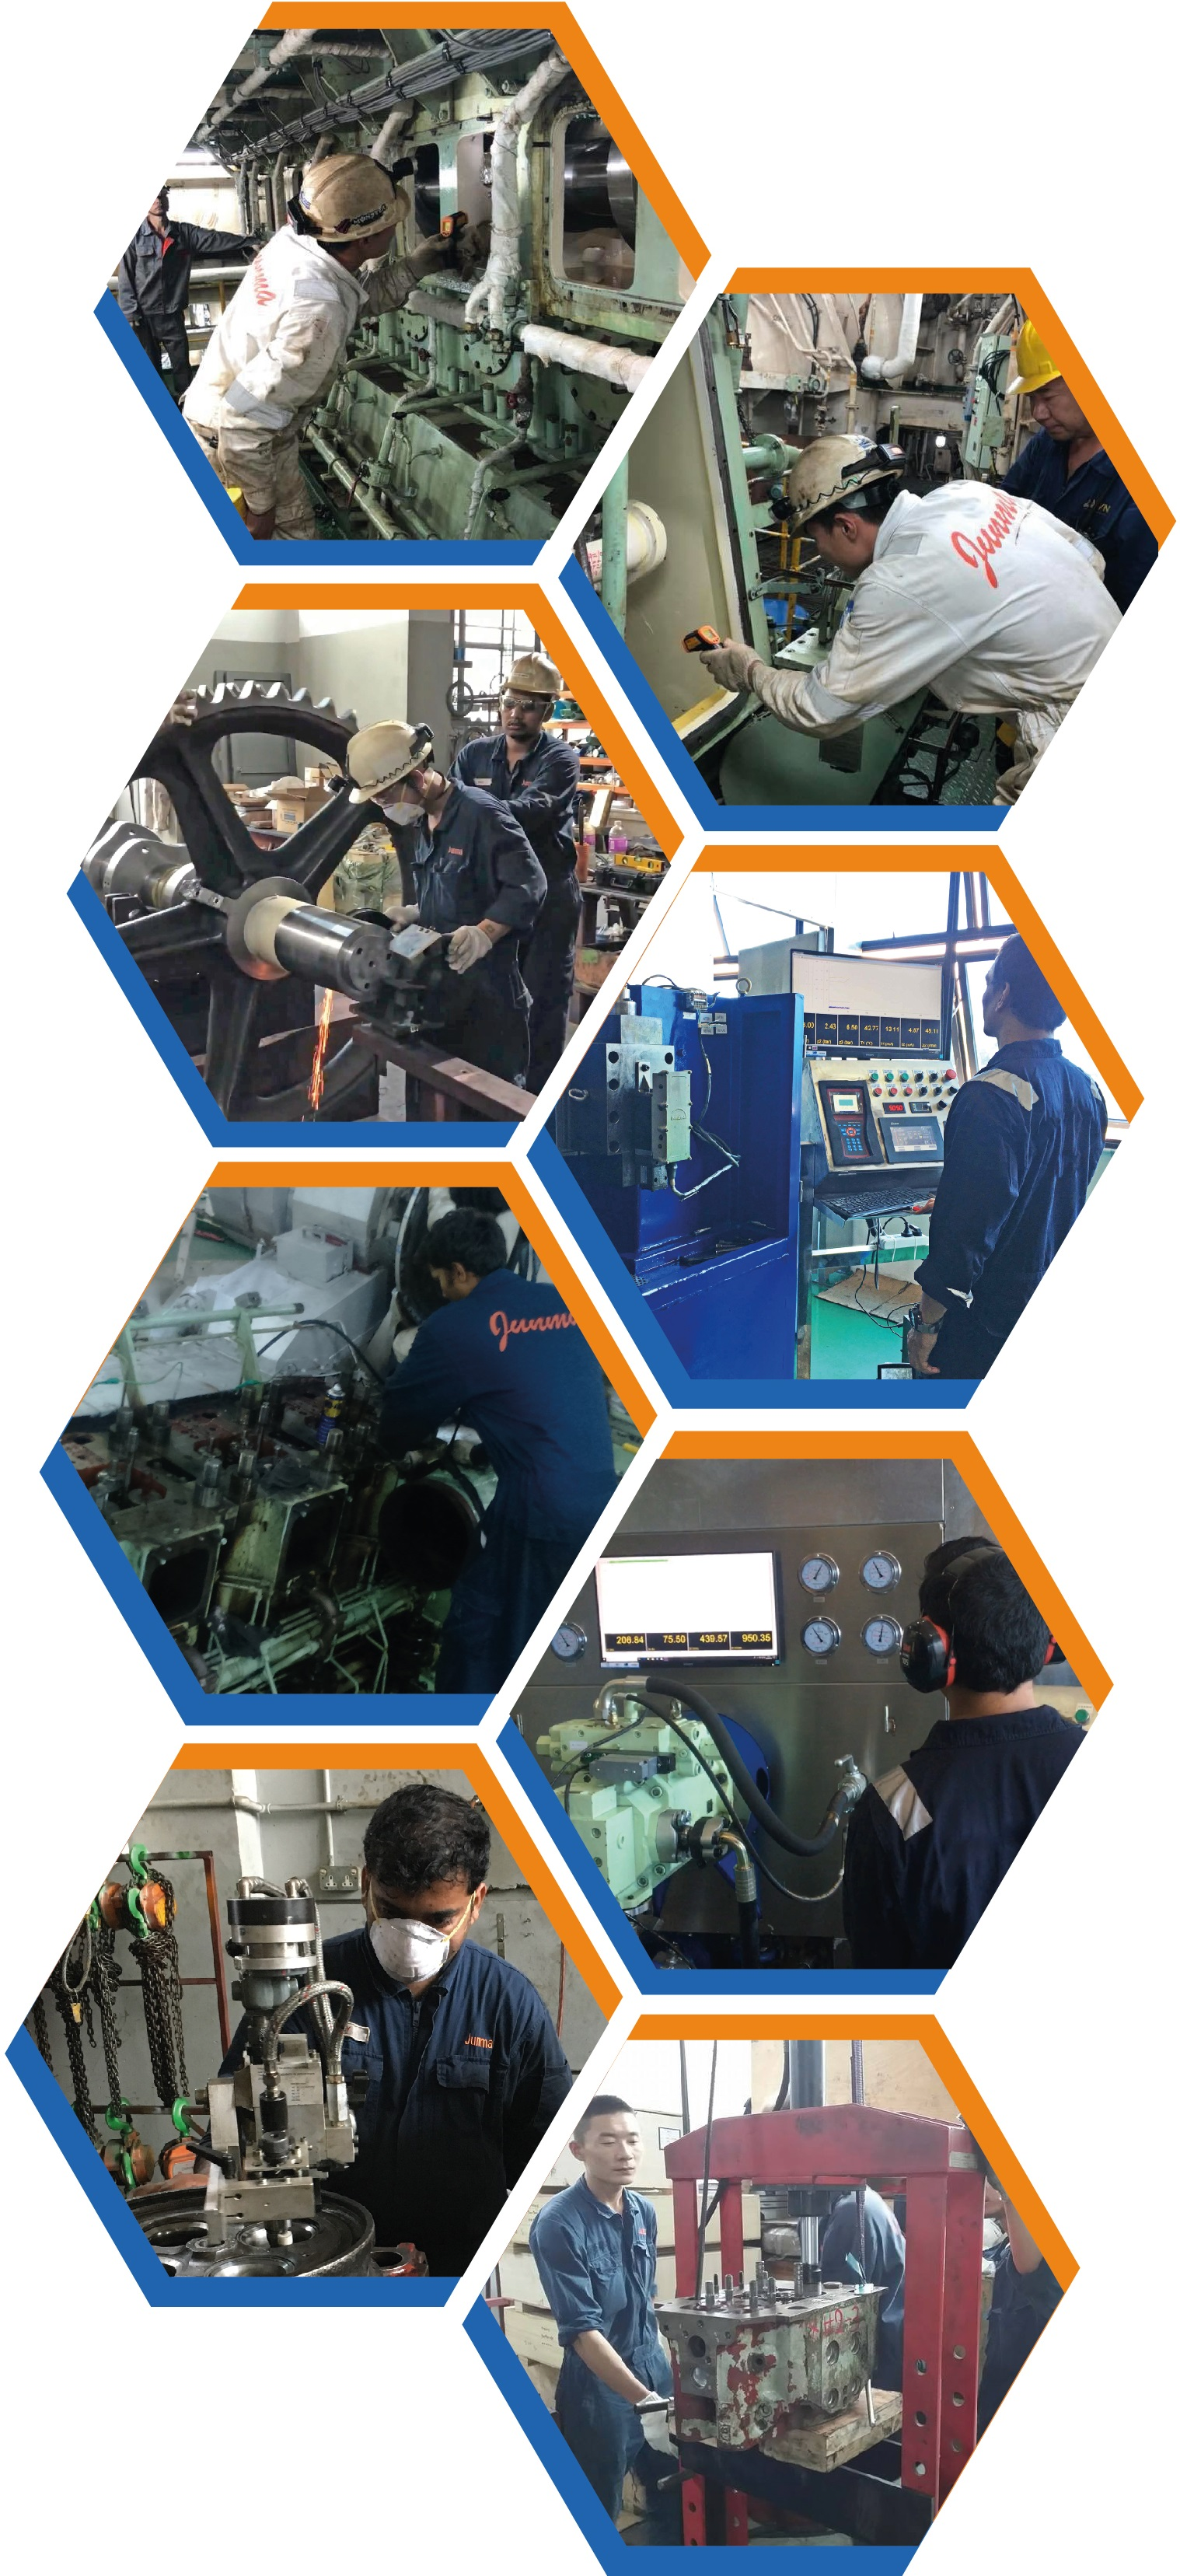 MC/MC-C/ME-C/ME-B, RTA/RT-Flex and Other Marine Diesel Engine System: